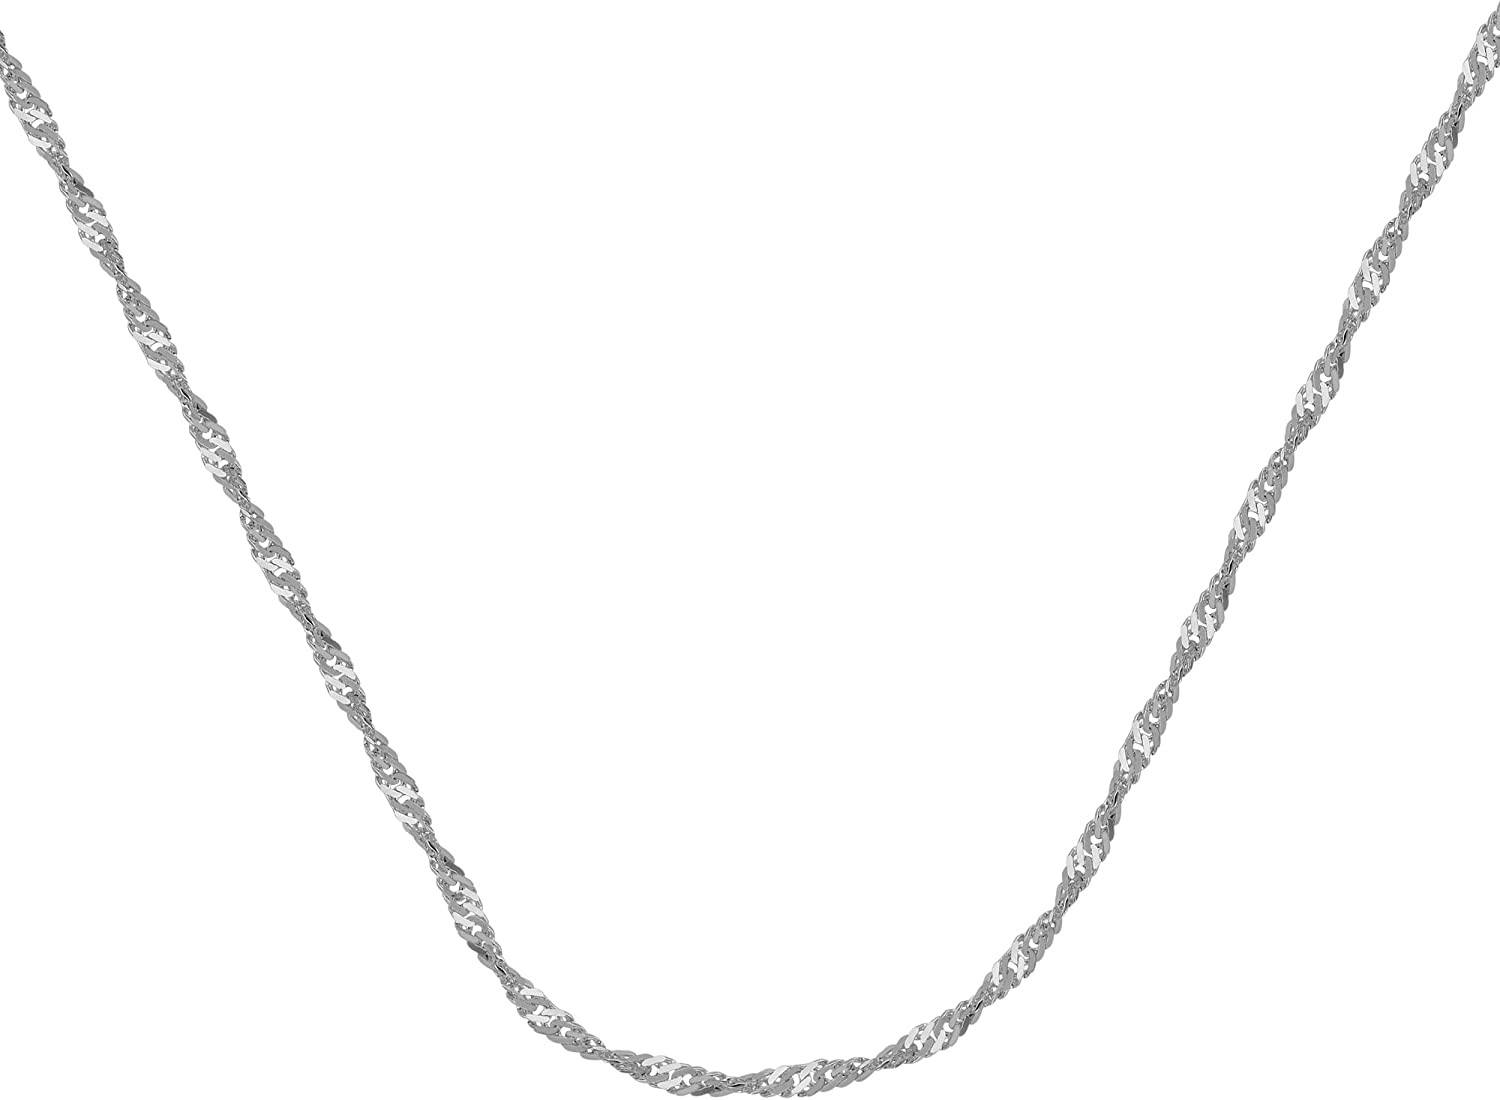 14KT GOLD SINGAPORE CHAIN WITH LOBSTER LOCK 18 INCHES LONG SINGAPORE CHAIN